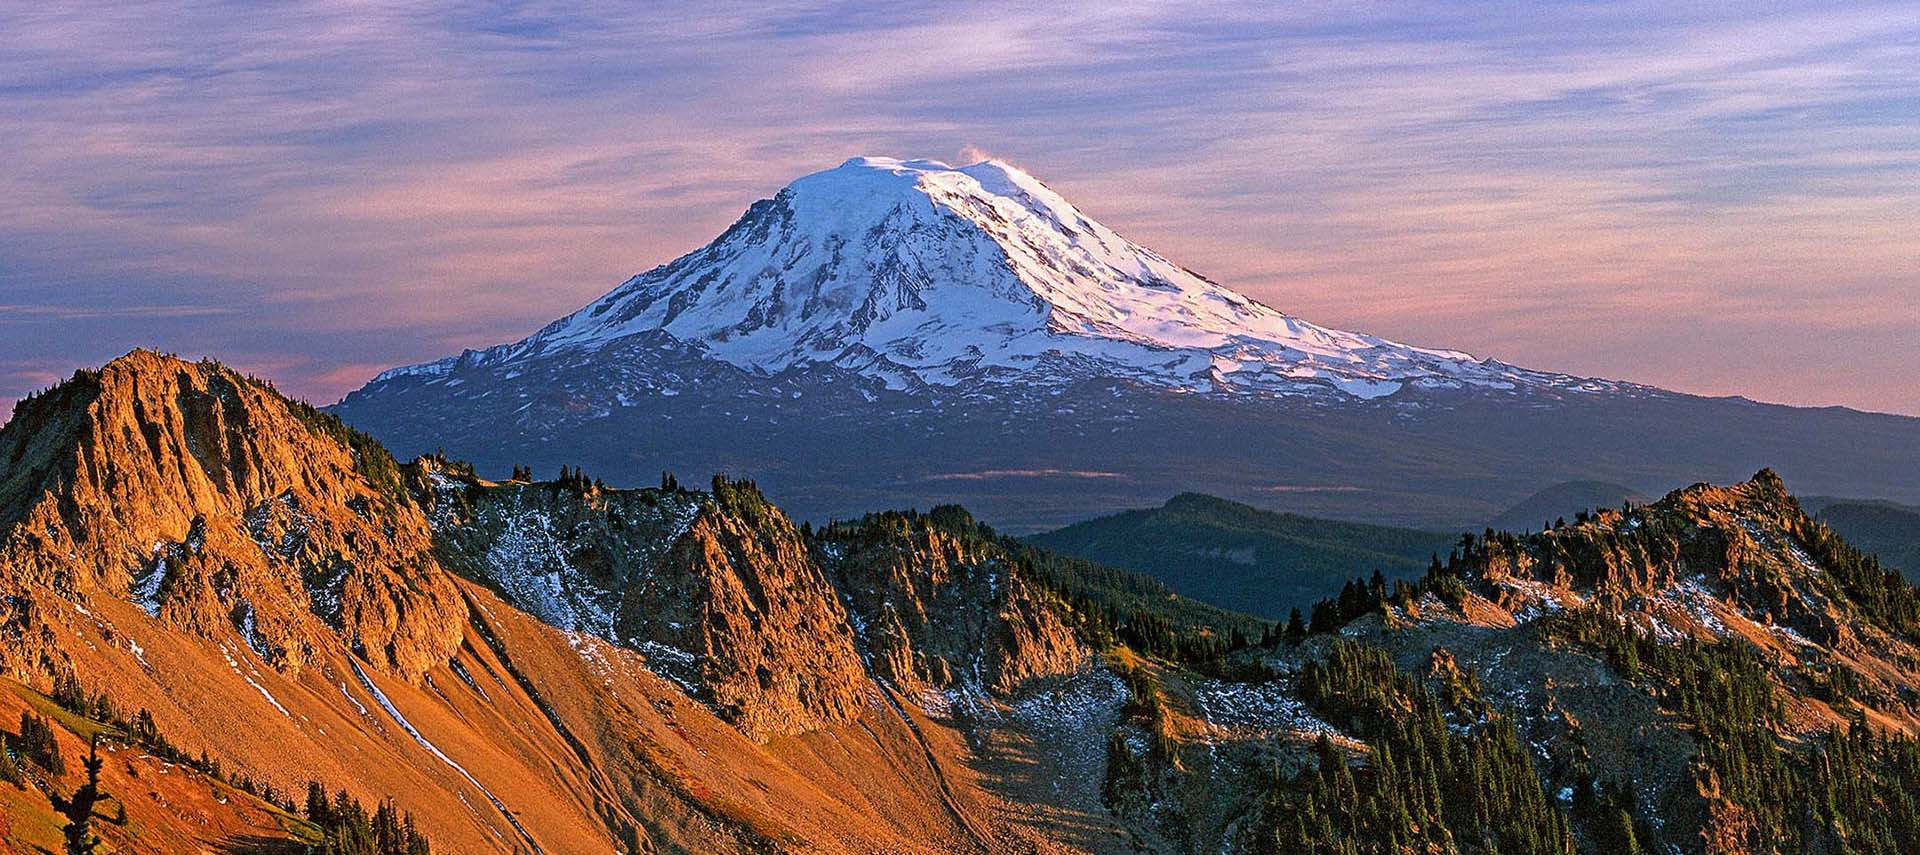 North side of Mount Adams from Goat Rocks